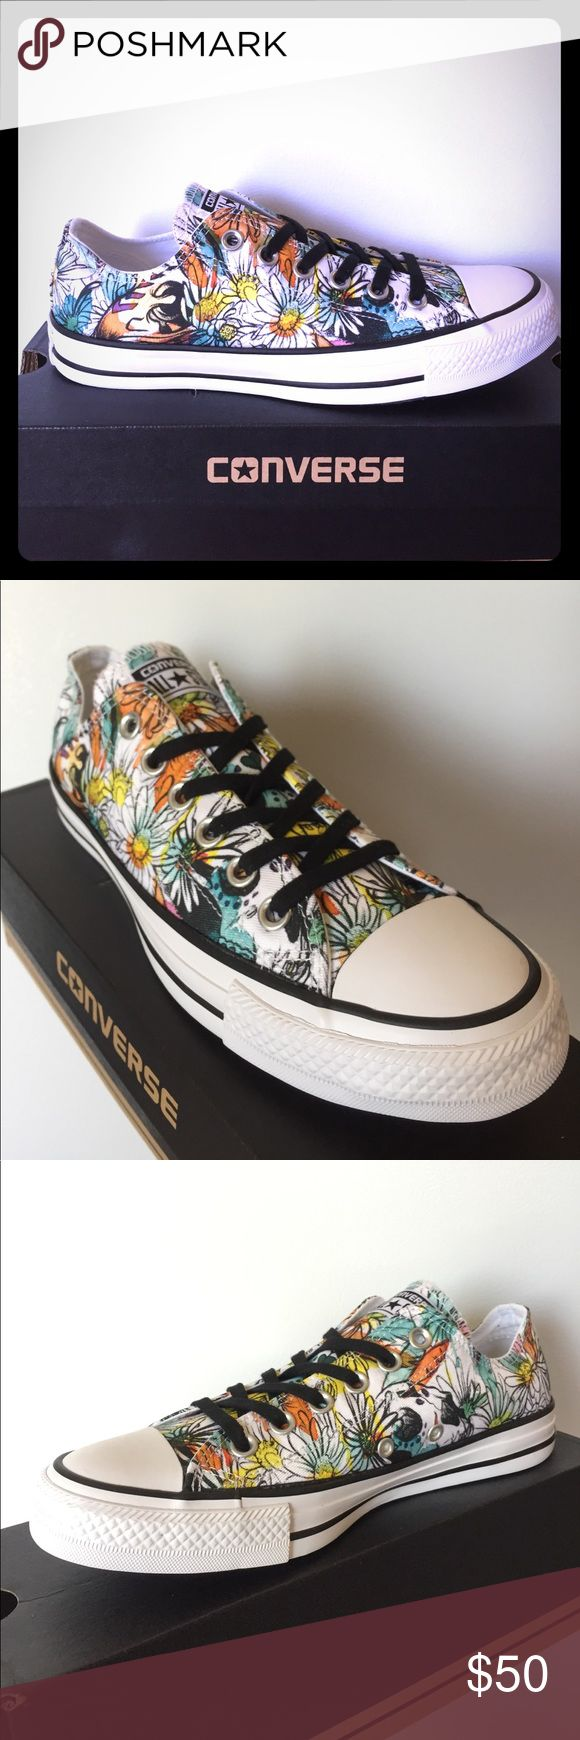 BRAND NEW Converse Chuck Taylor Rebel Print!!! Check out this RAD classic Chuck with Rebel Print!!! Flowers  sketched Print throughout with vibrant yellow, teal and orange colors!!! Very unique chucks!!! DONT MISS OUT!!! Converse Shoes Sneakers